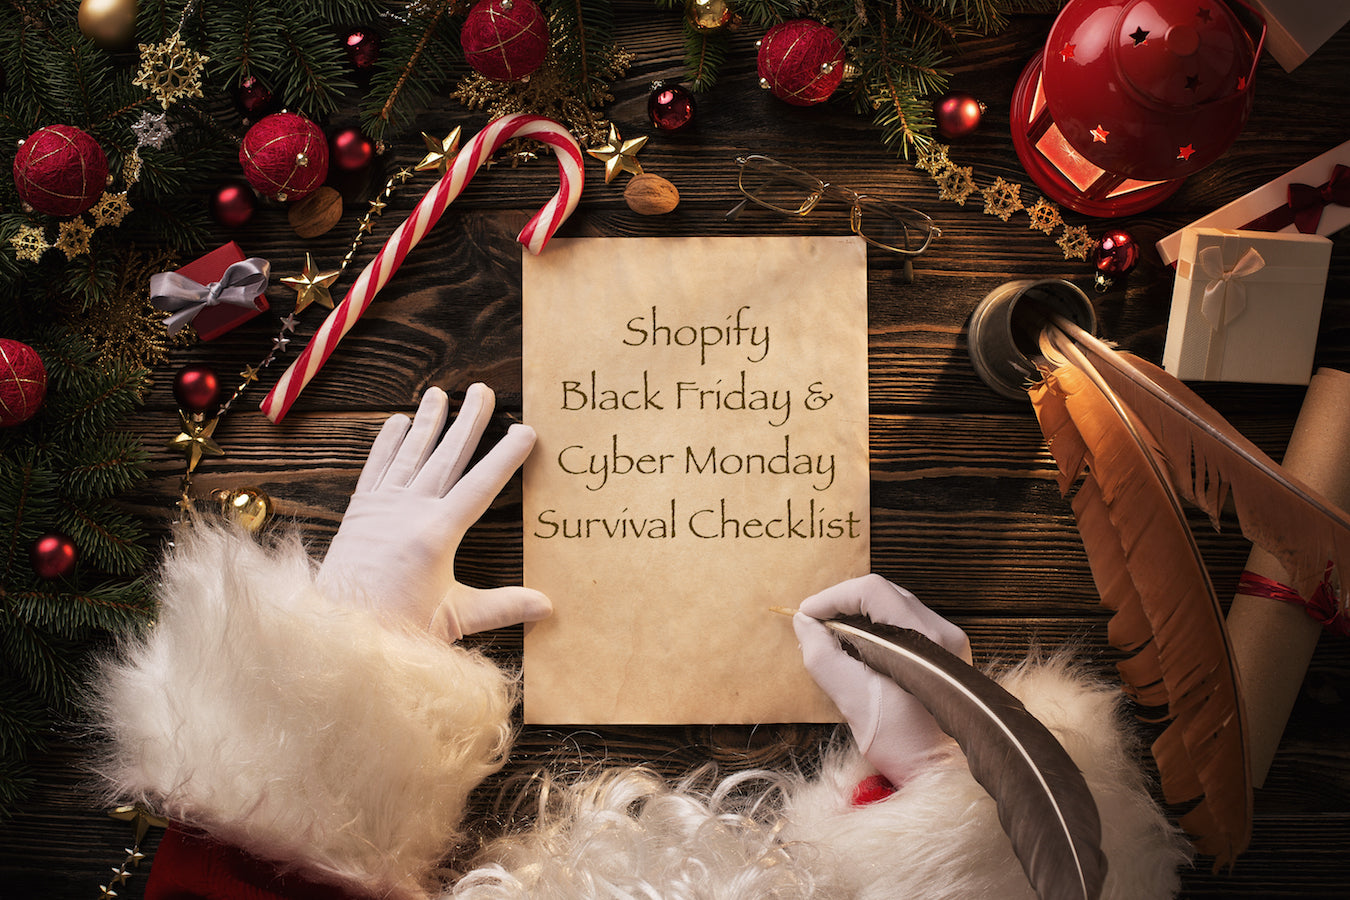 black friday cyber monday 2018 a shopify website survival checklist